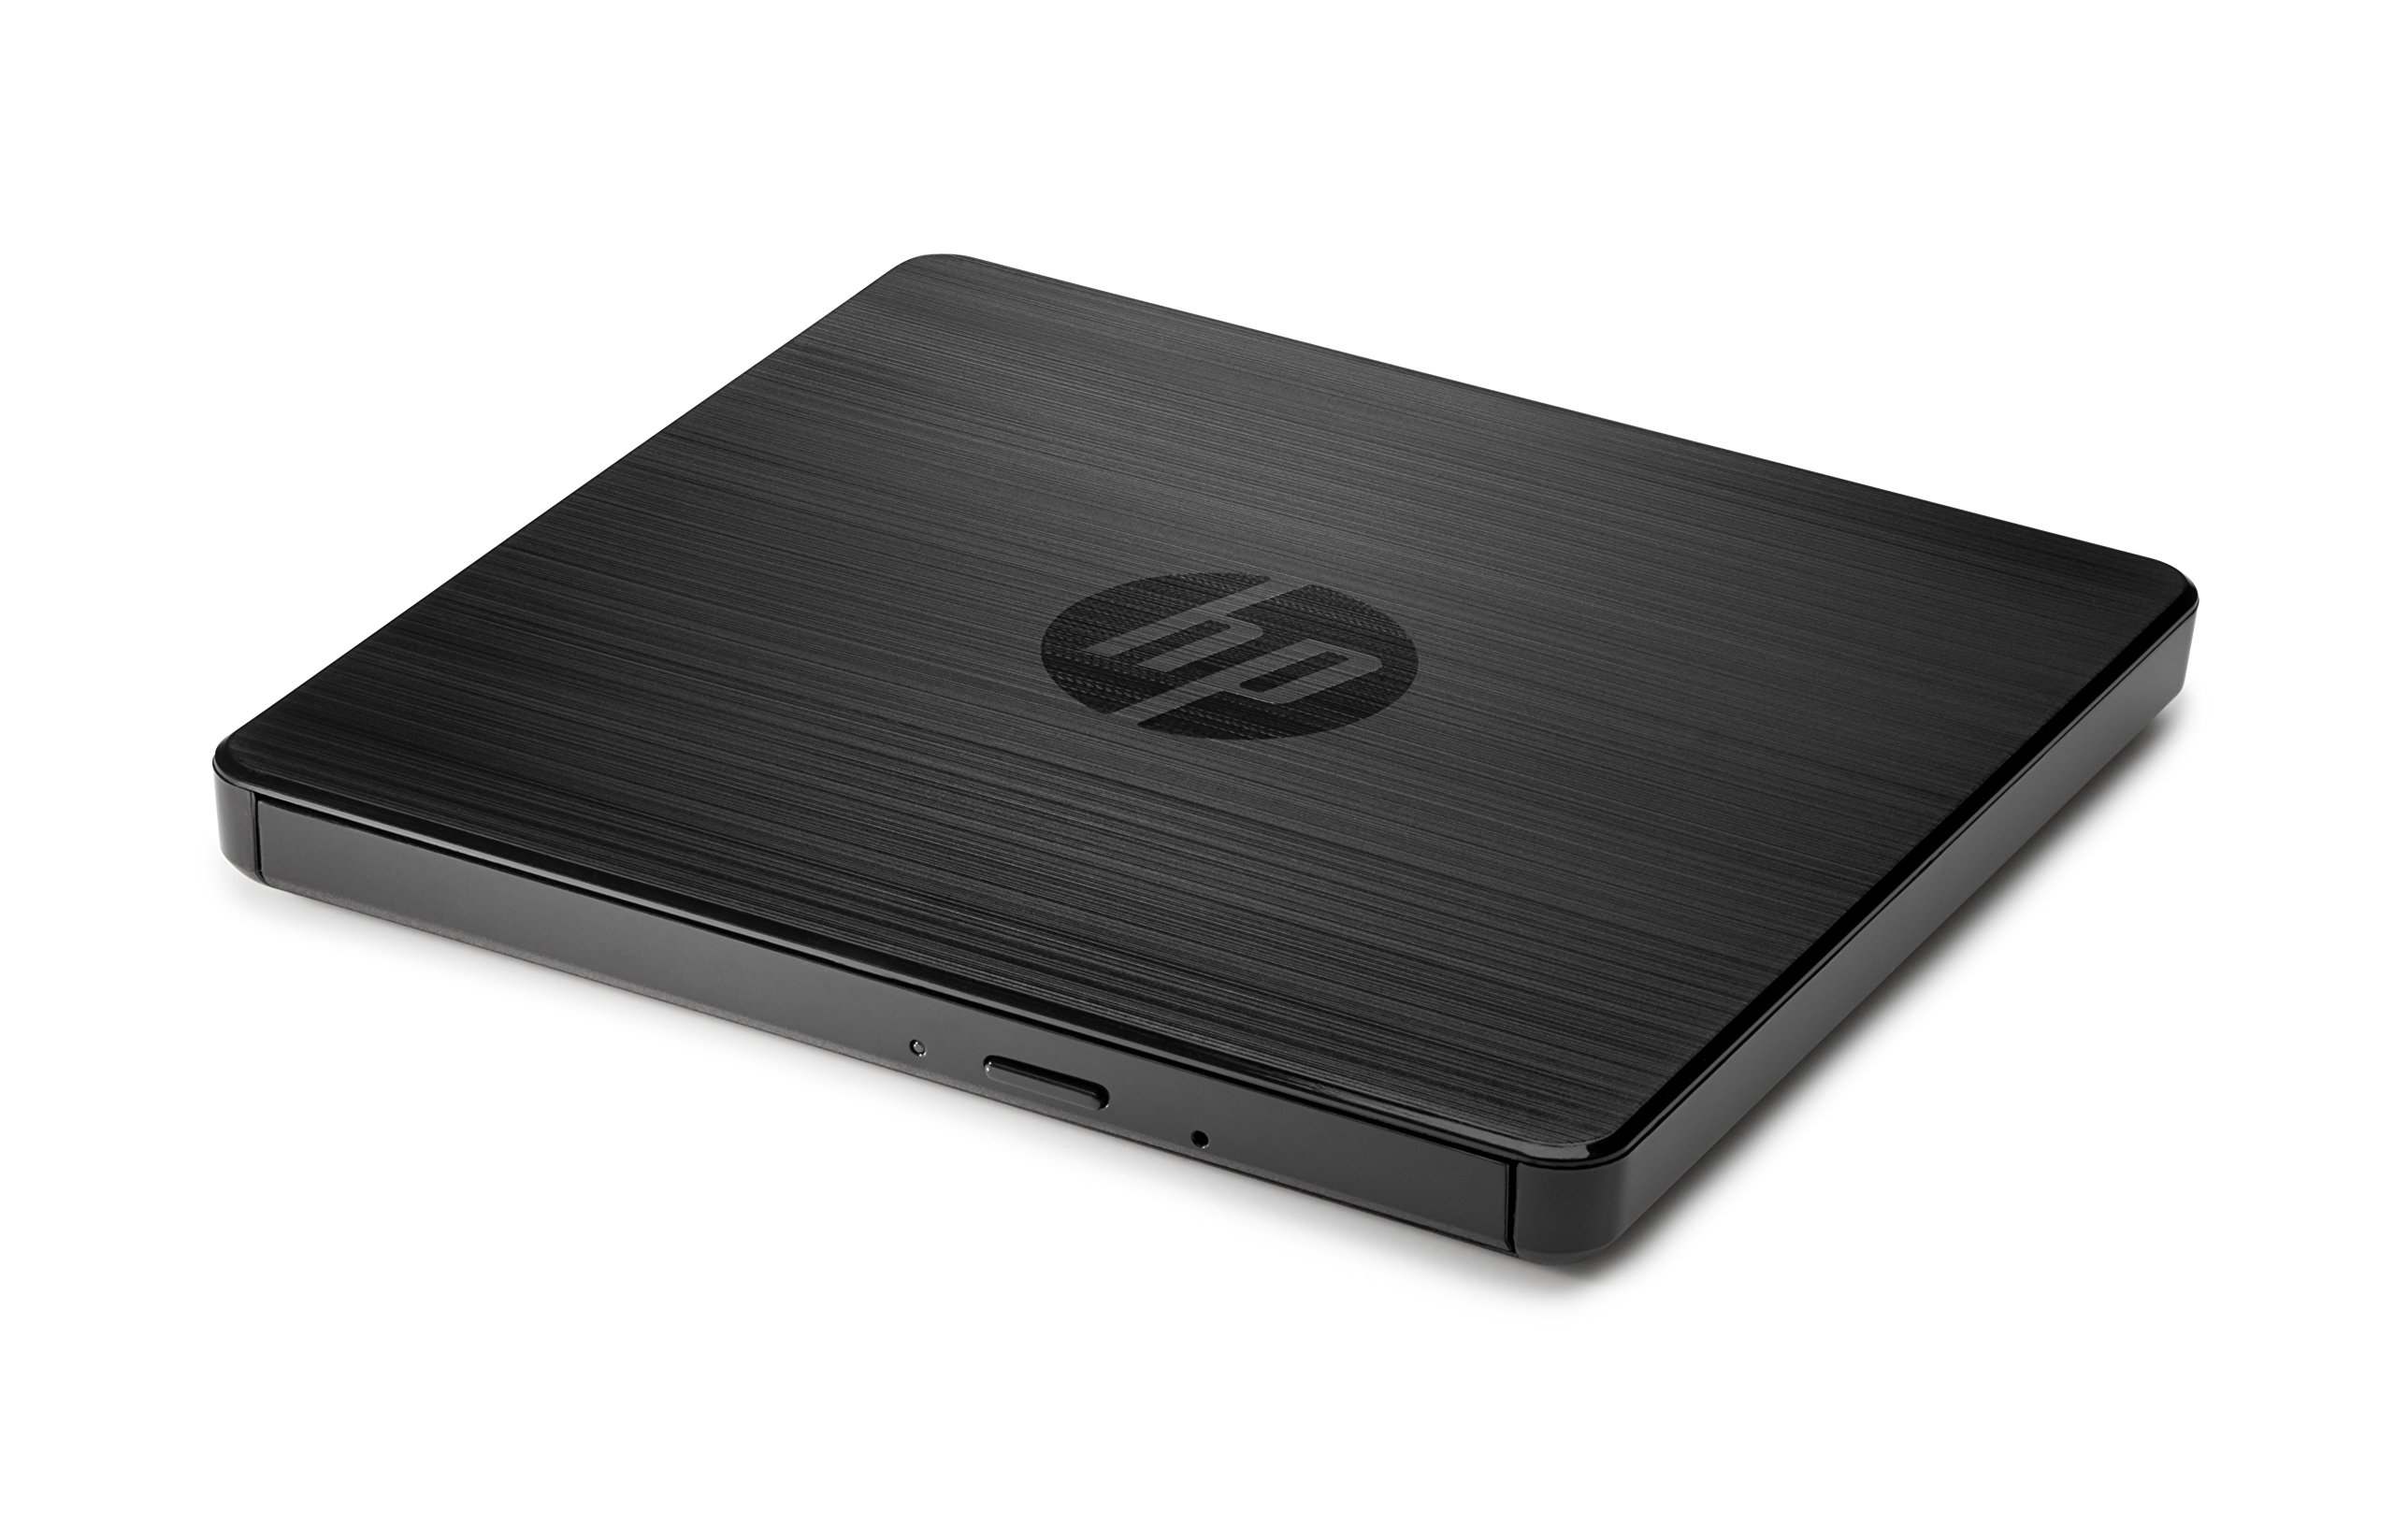 HP USB External Dvdrw Drive Black (F6V97Aa)